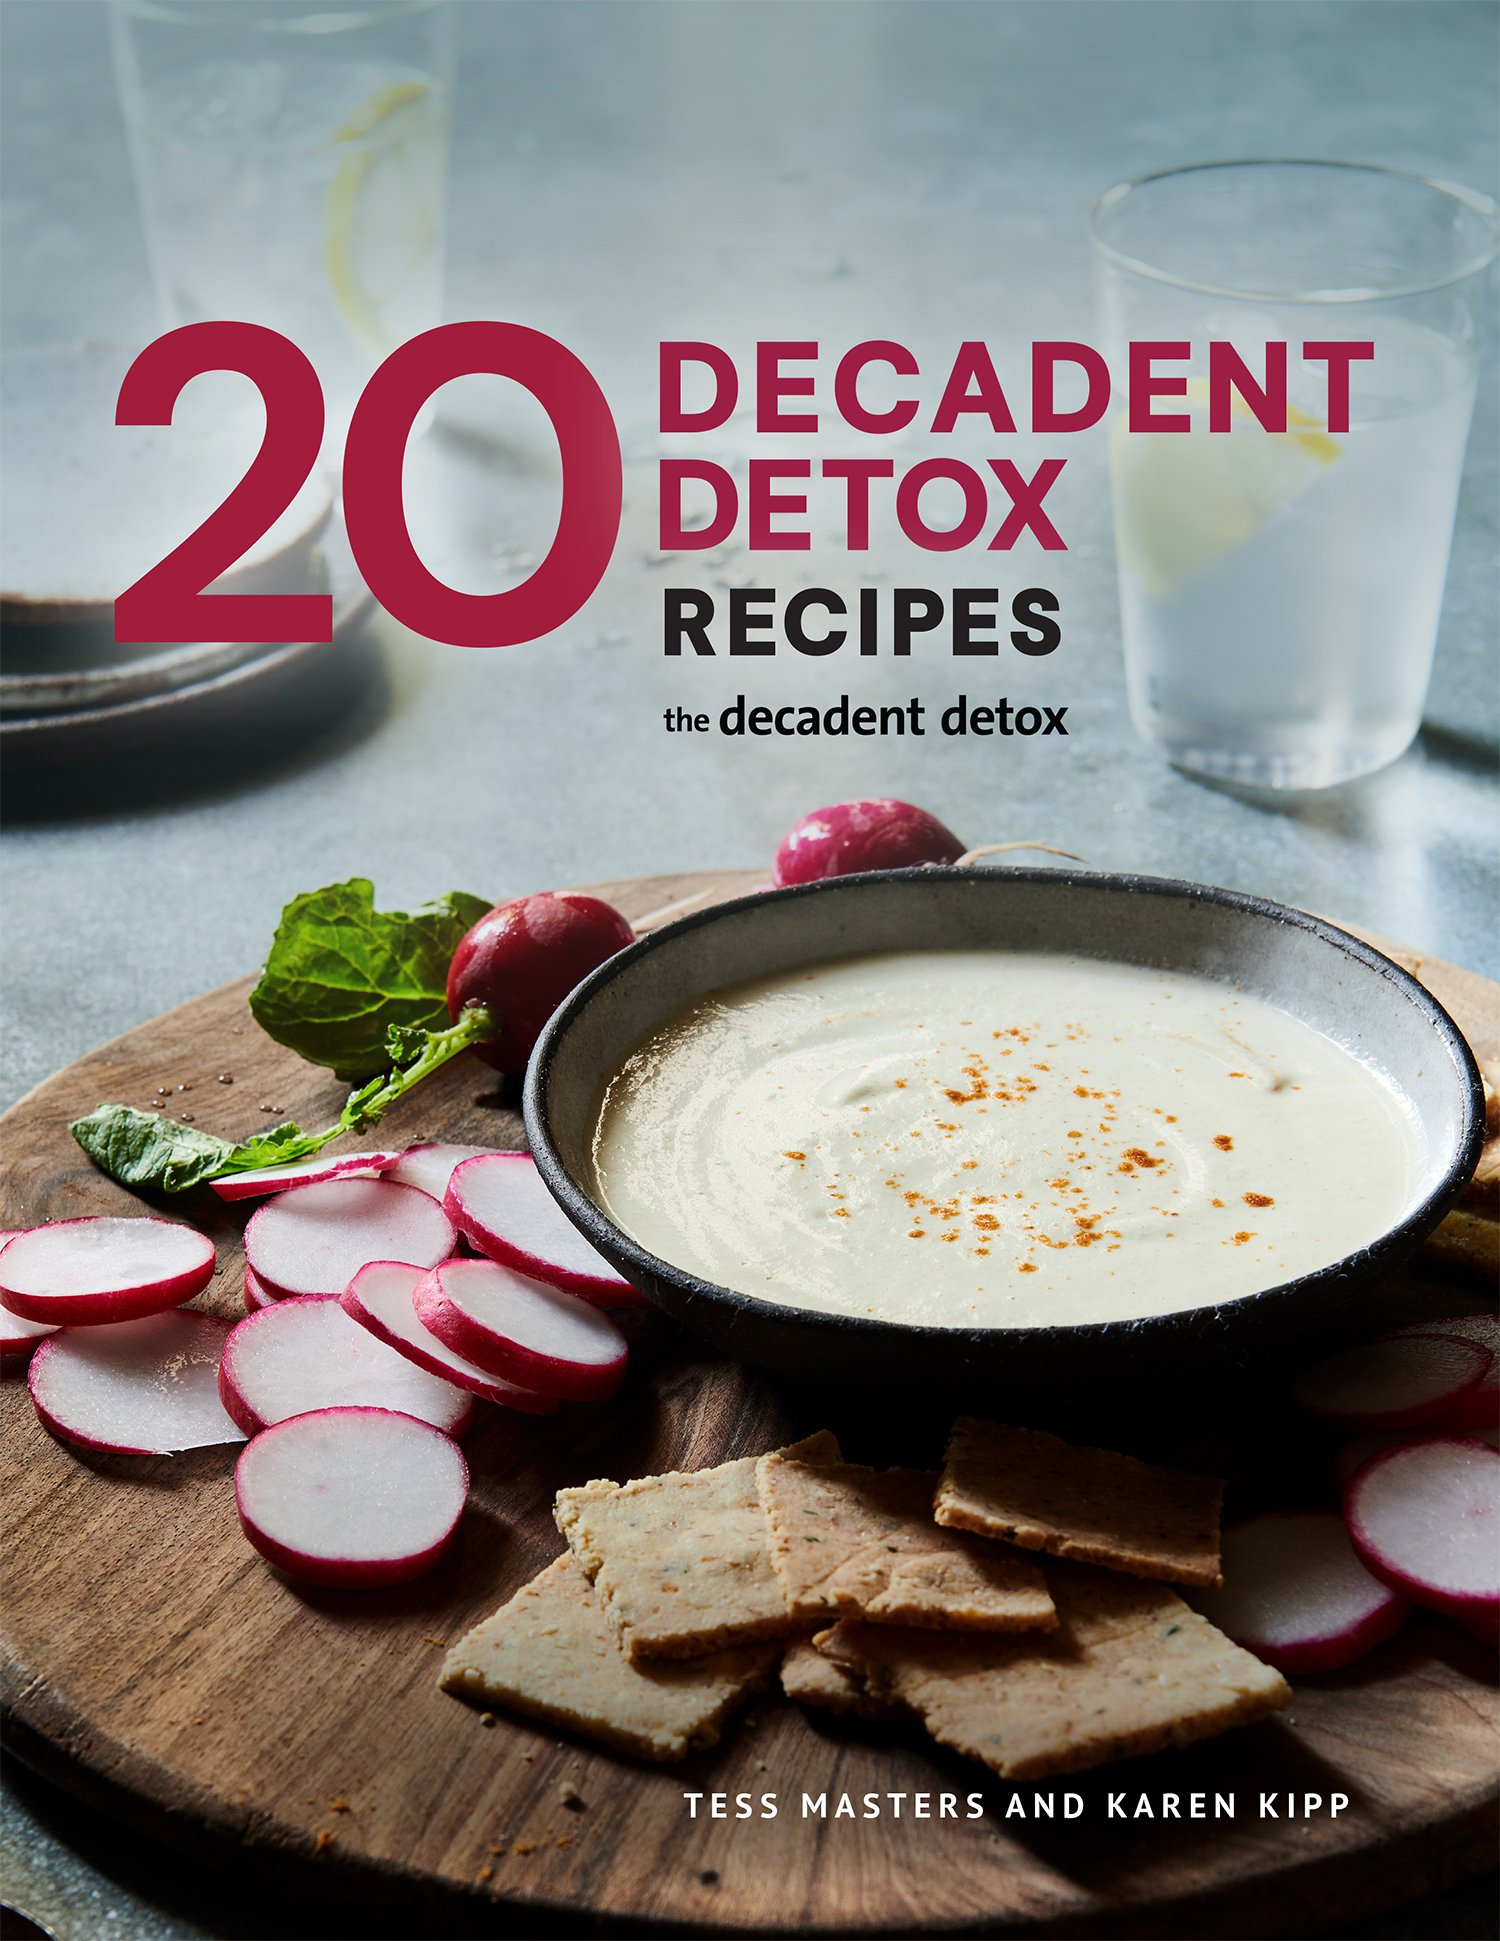 20 Decadent Detox Recipes